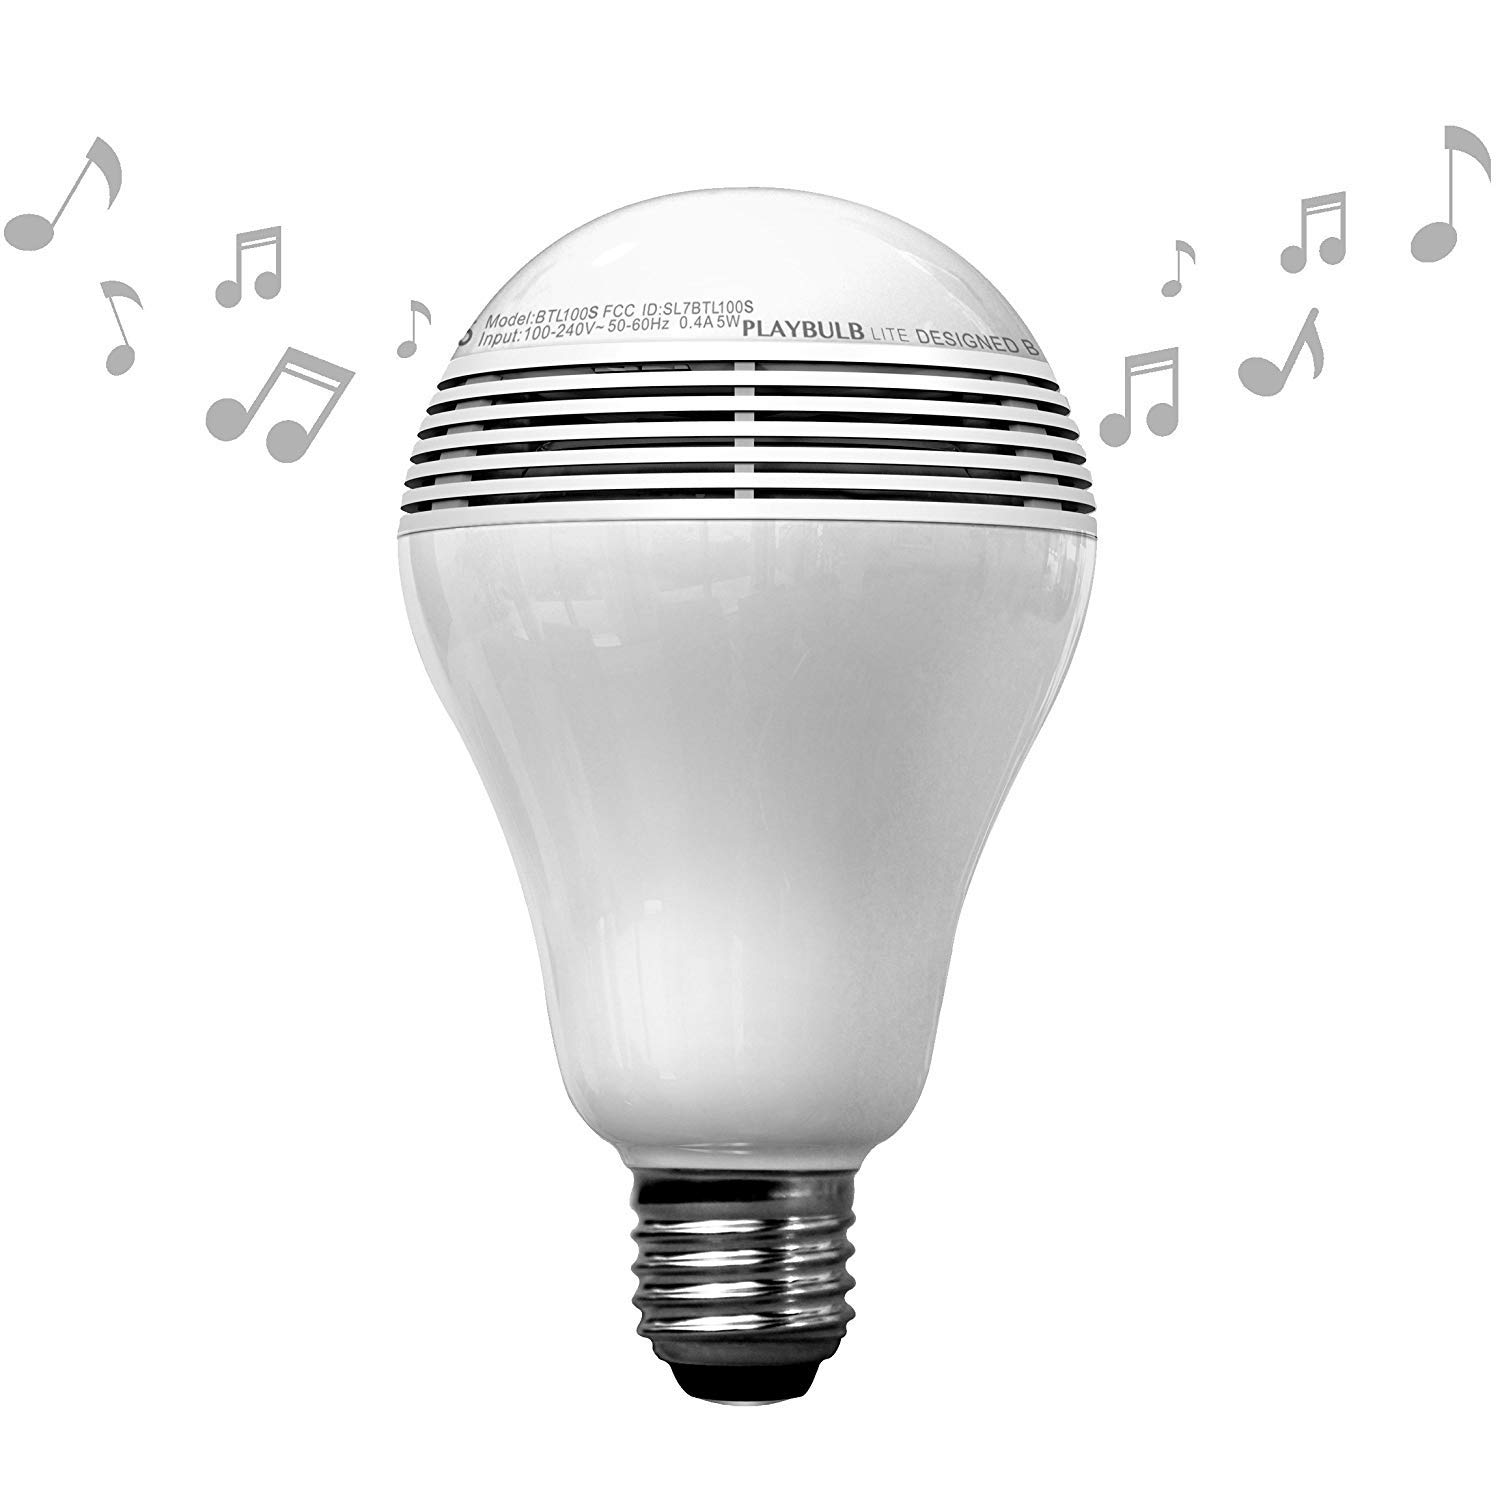 PLAYBULB LED Light Bulb Bluetooth Speaker, Multicolor RGB Color Changing Lamp Wireless Stereo Audio - 110V/5W - E26/E27 Base - App Control - No Hub Required